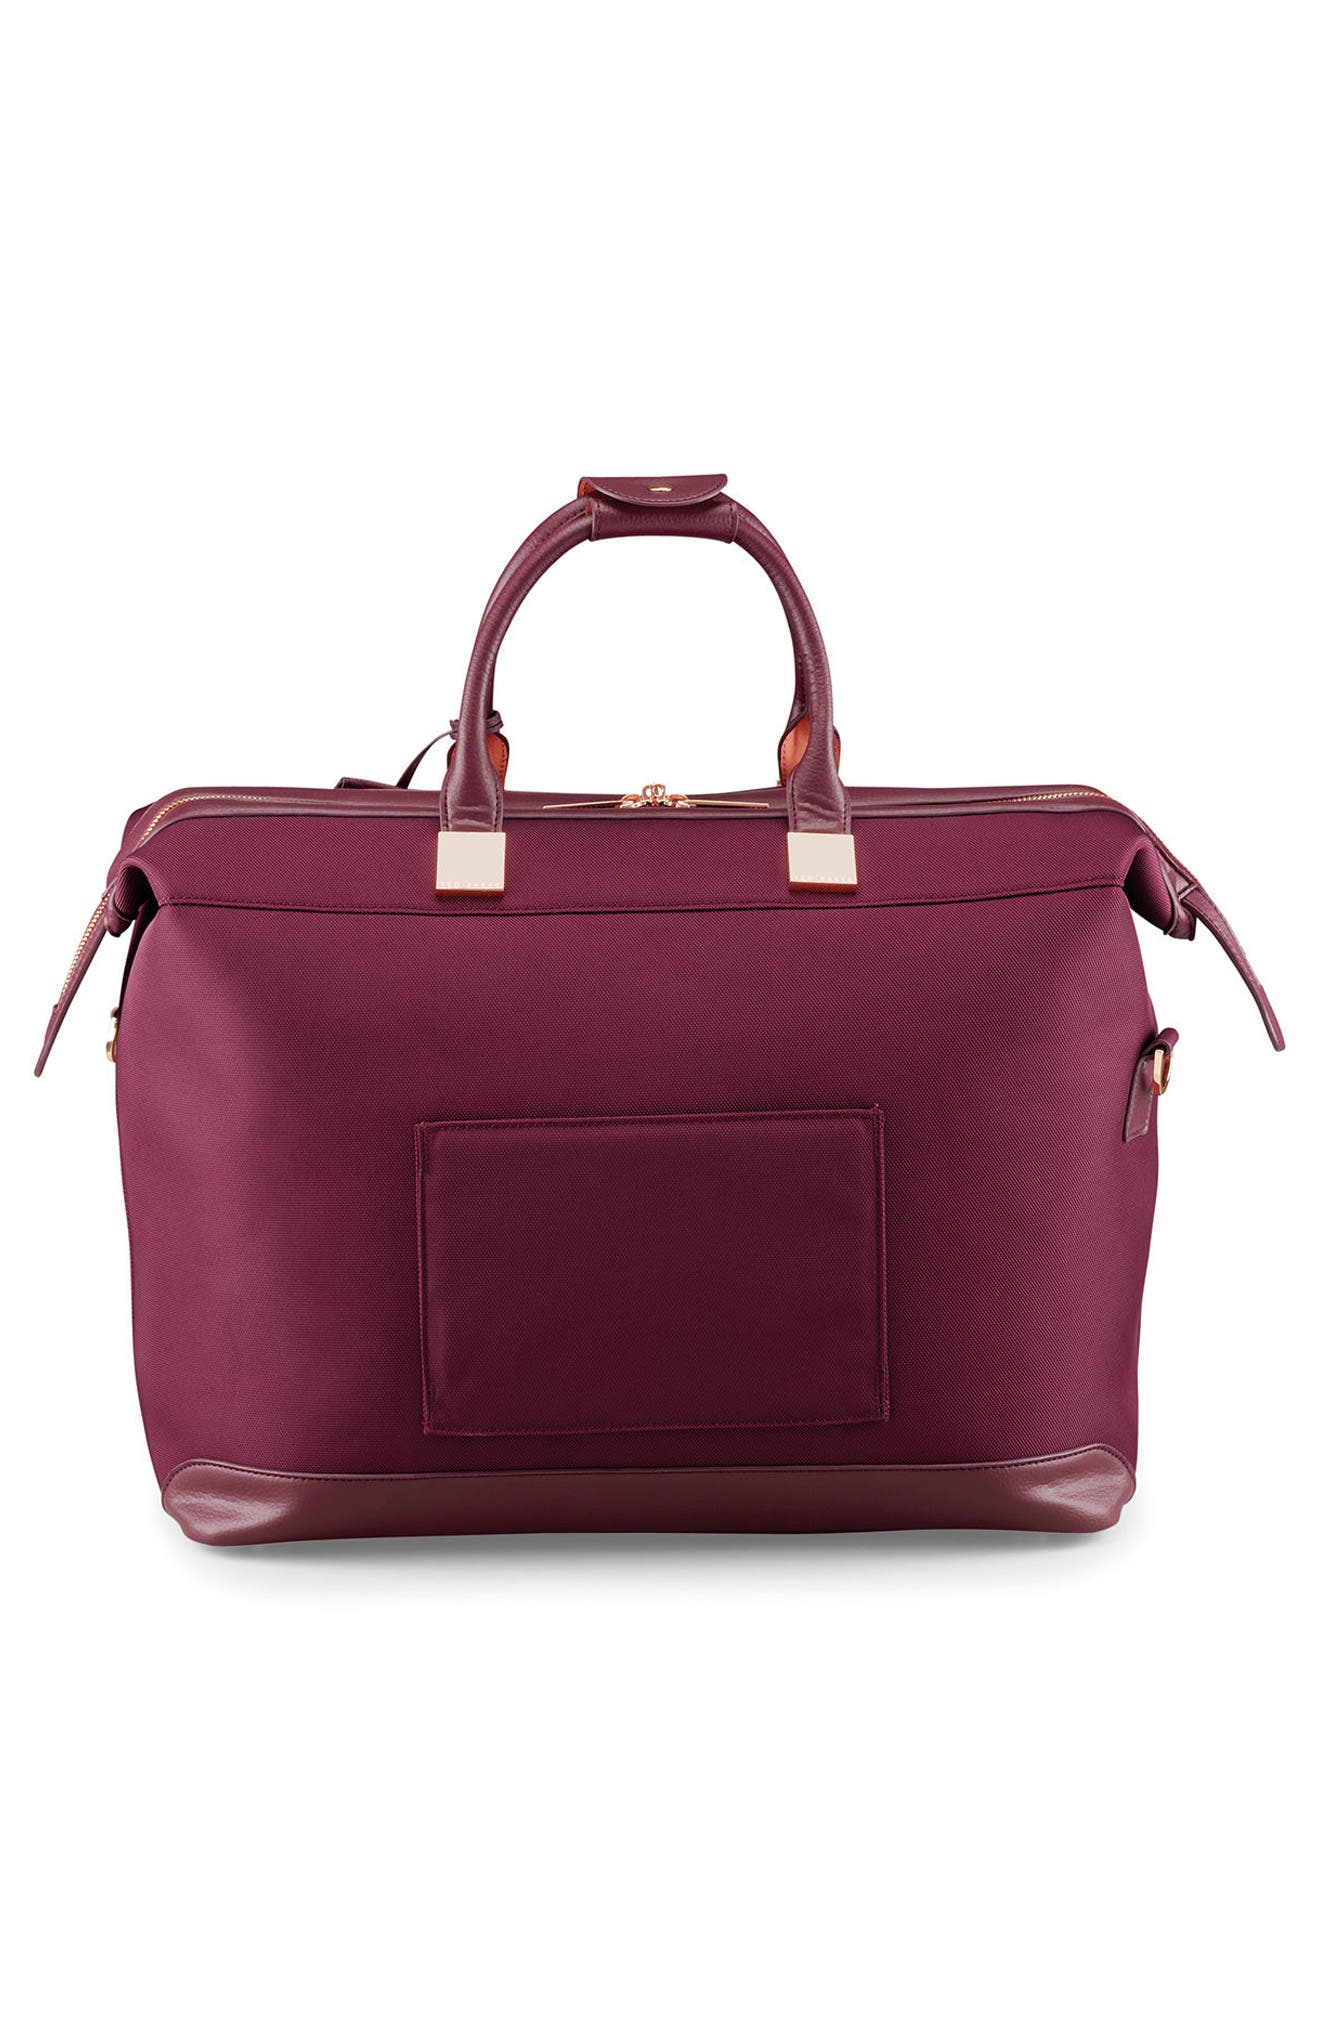 TED BAKER LONDON, Small Clipper Duffle Bag, Alternate thumbnail 3, color, BURGUNDY